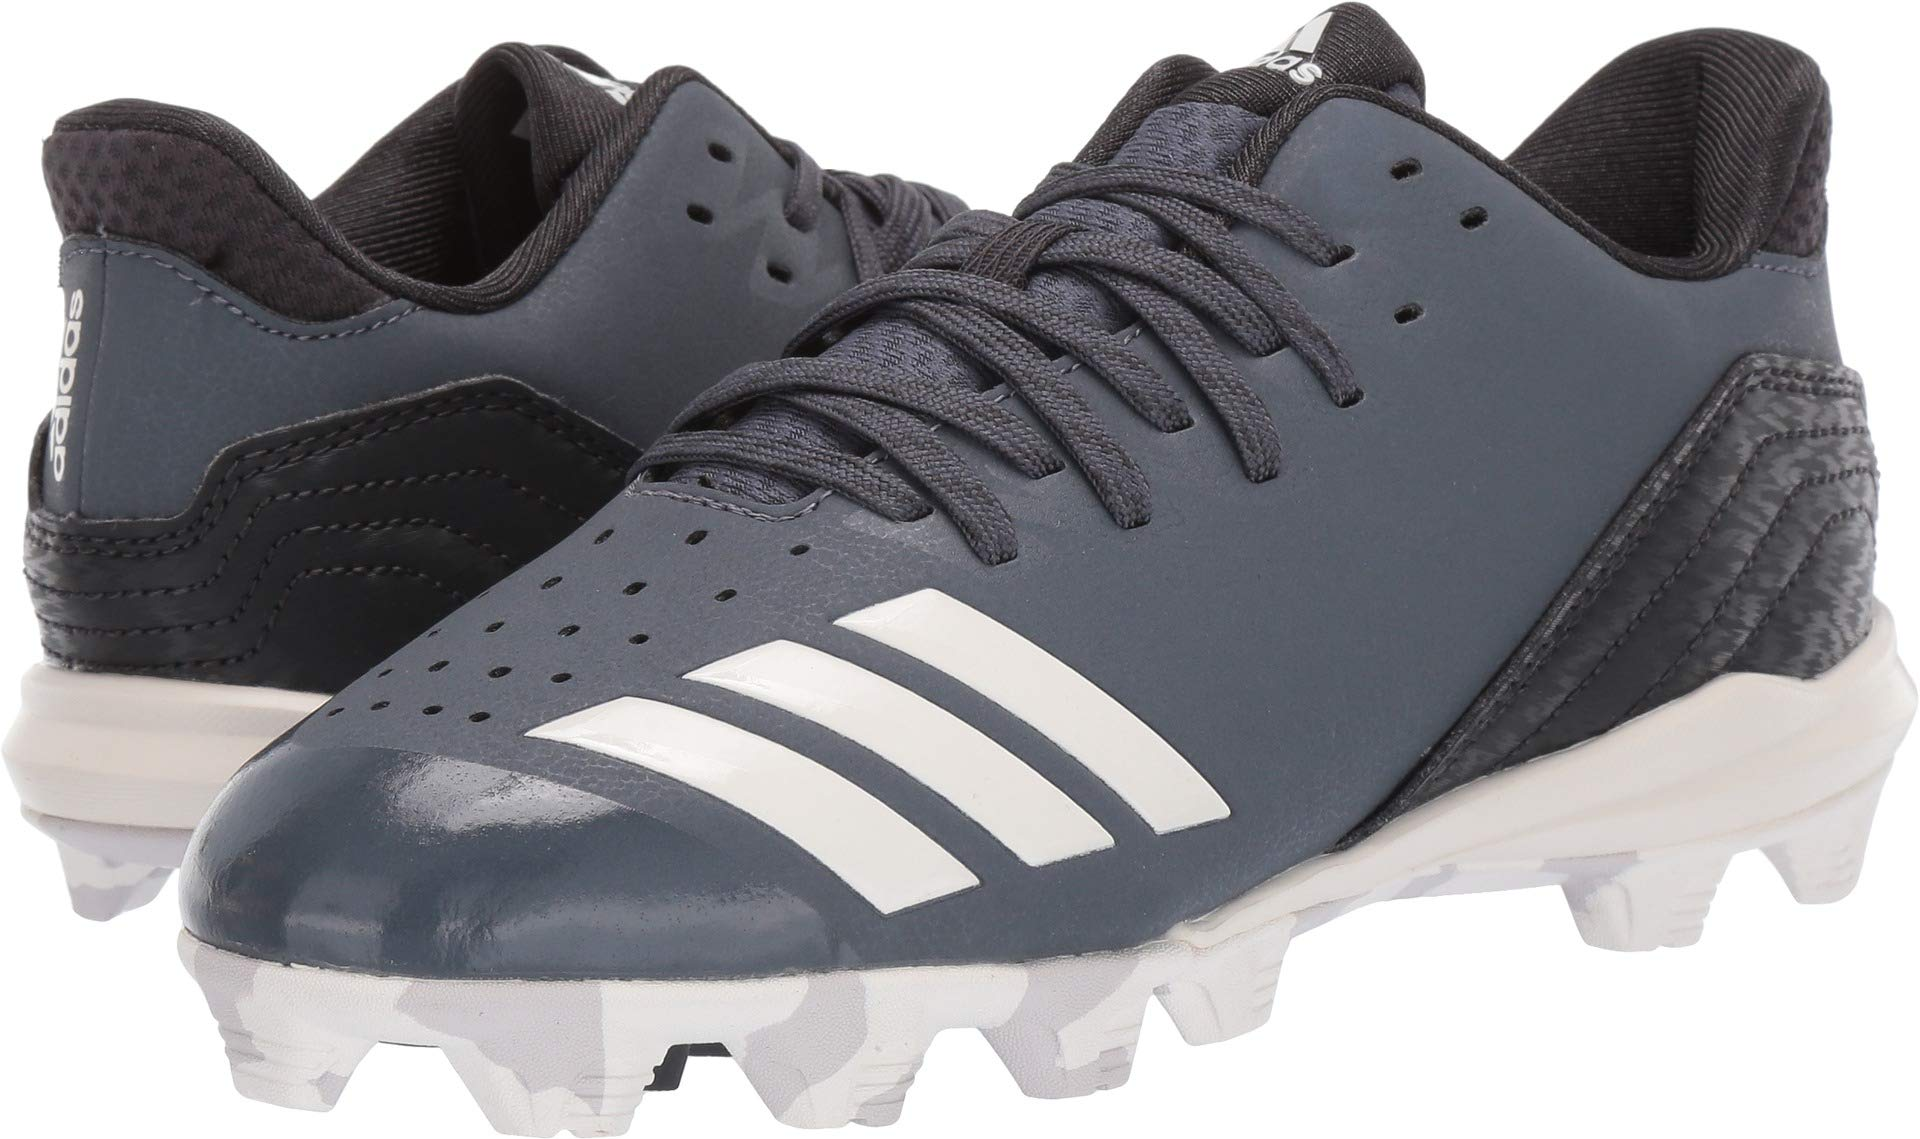 adidas Unisex Icon 4, Onix/Cloud White/Carbon, 12K M US Little Kid by adidas